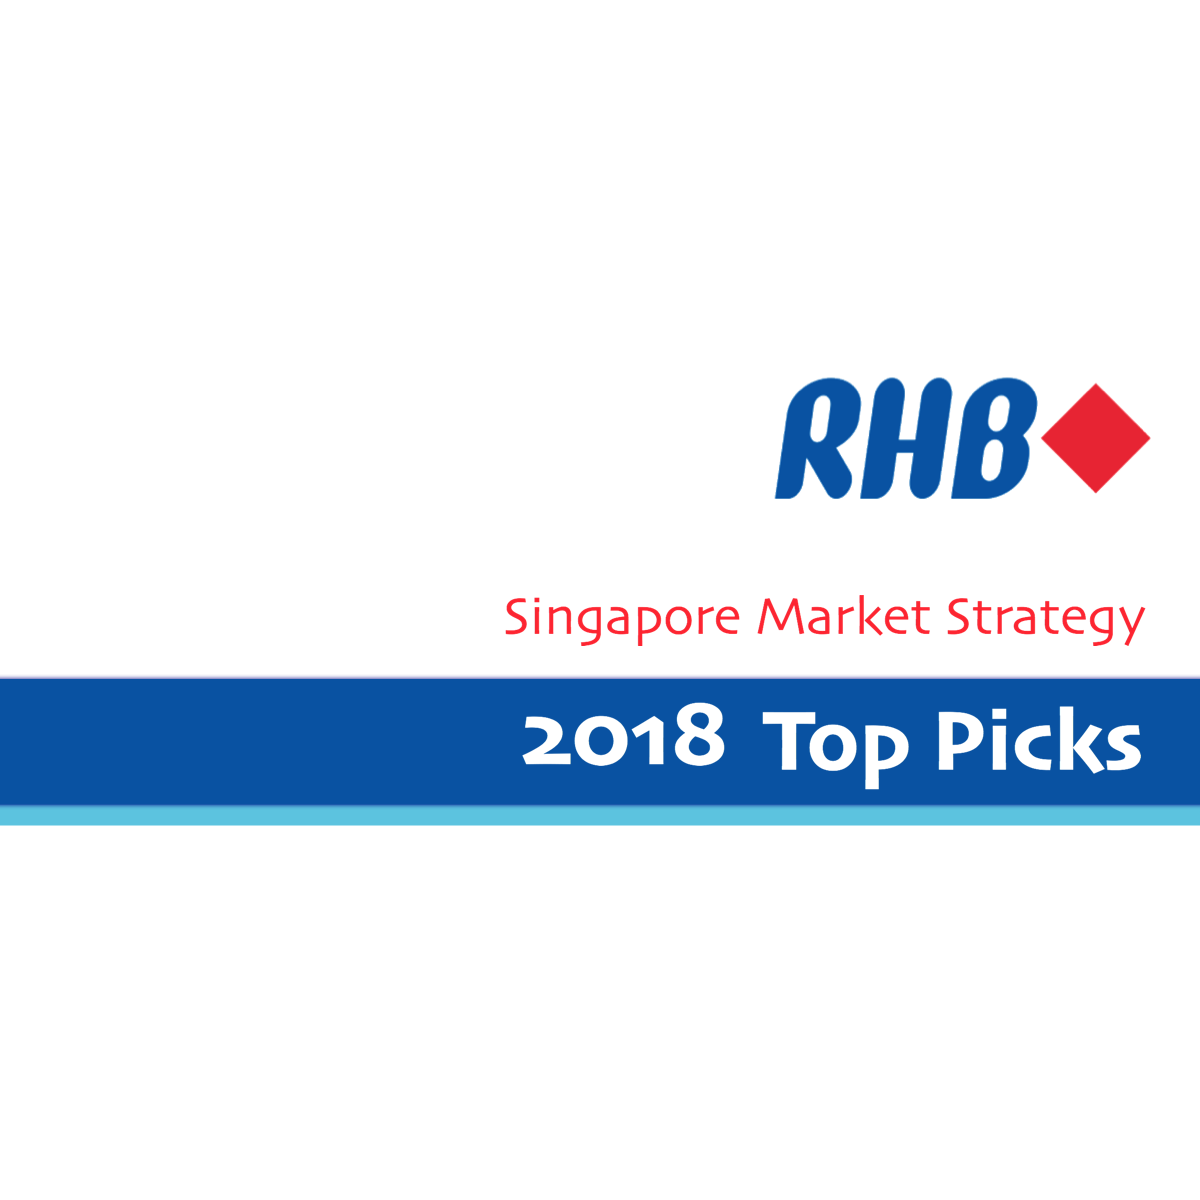 Small Mid Caps Stocks - RHB Invest 2018-06-27: Singapore Top Picks For 2h18